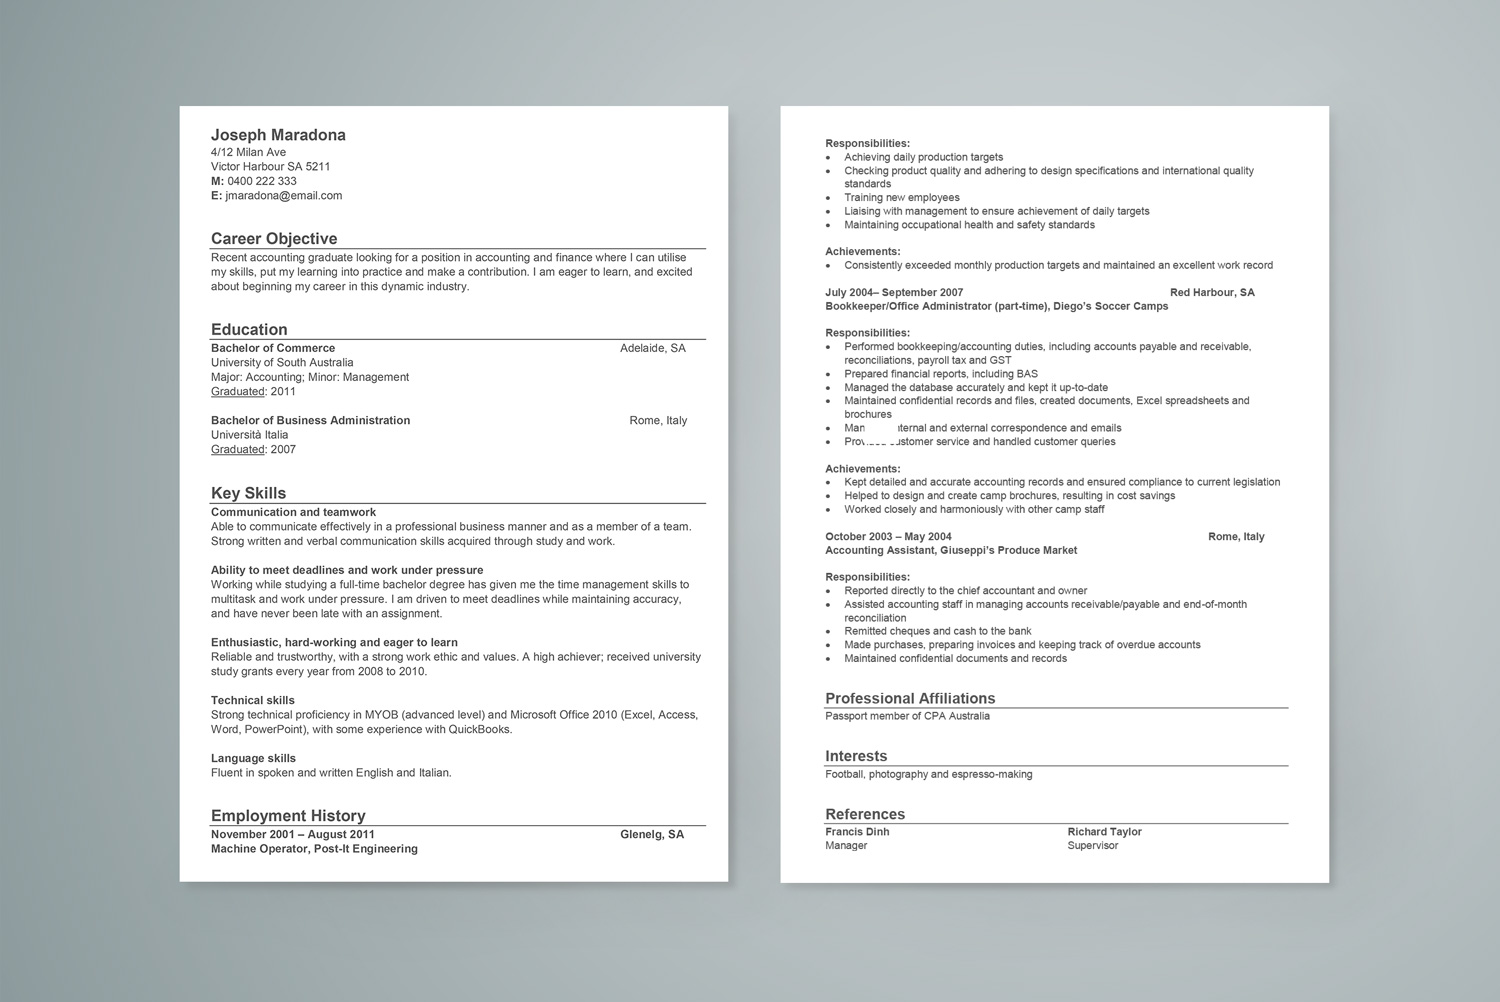 Resume Template Download Free Word Accounting Graduate Sample Resume  Career Faqs Resume For Food Server Pdf with Follow-up Email After Resume Word Free Resume Template Intership Resume Word